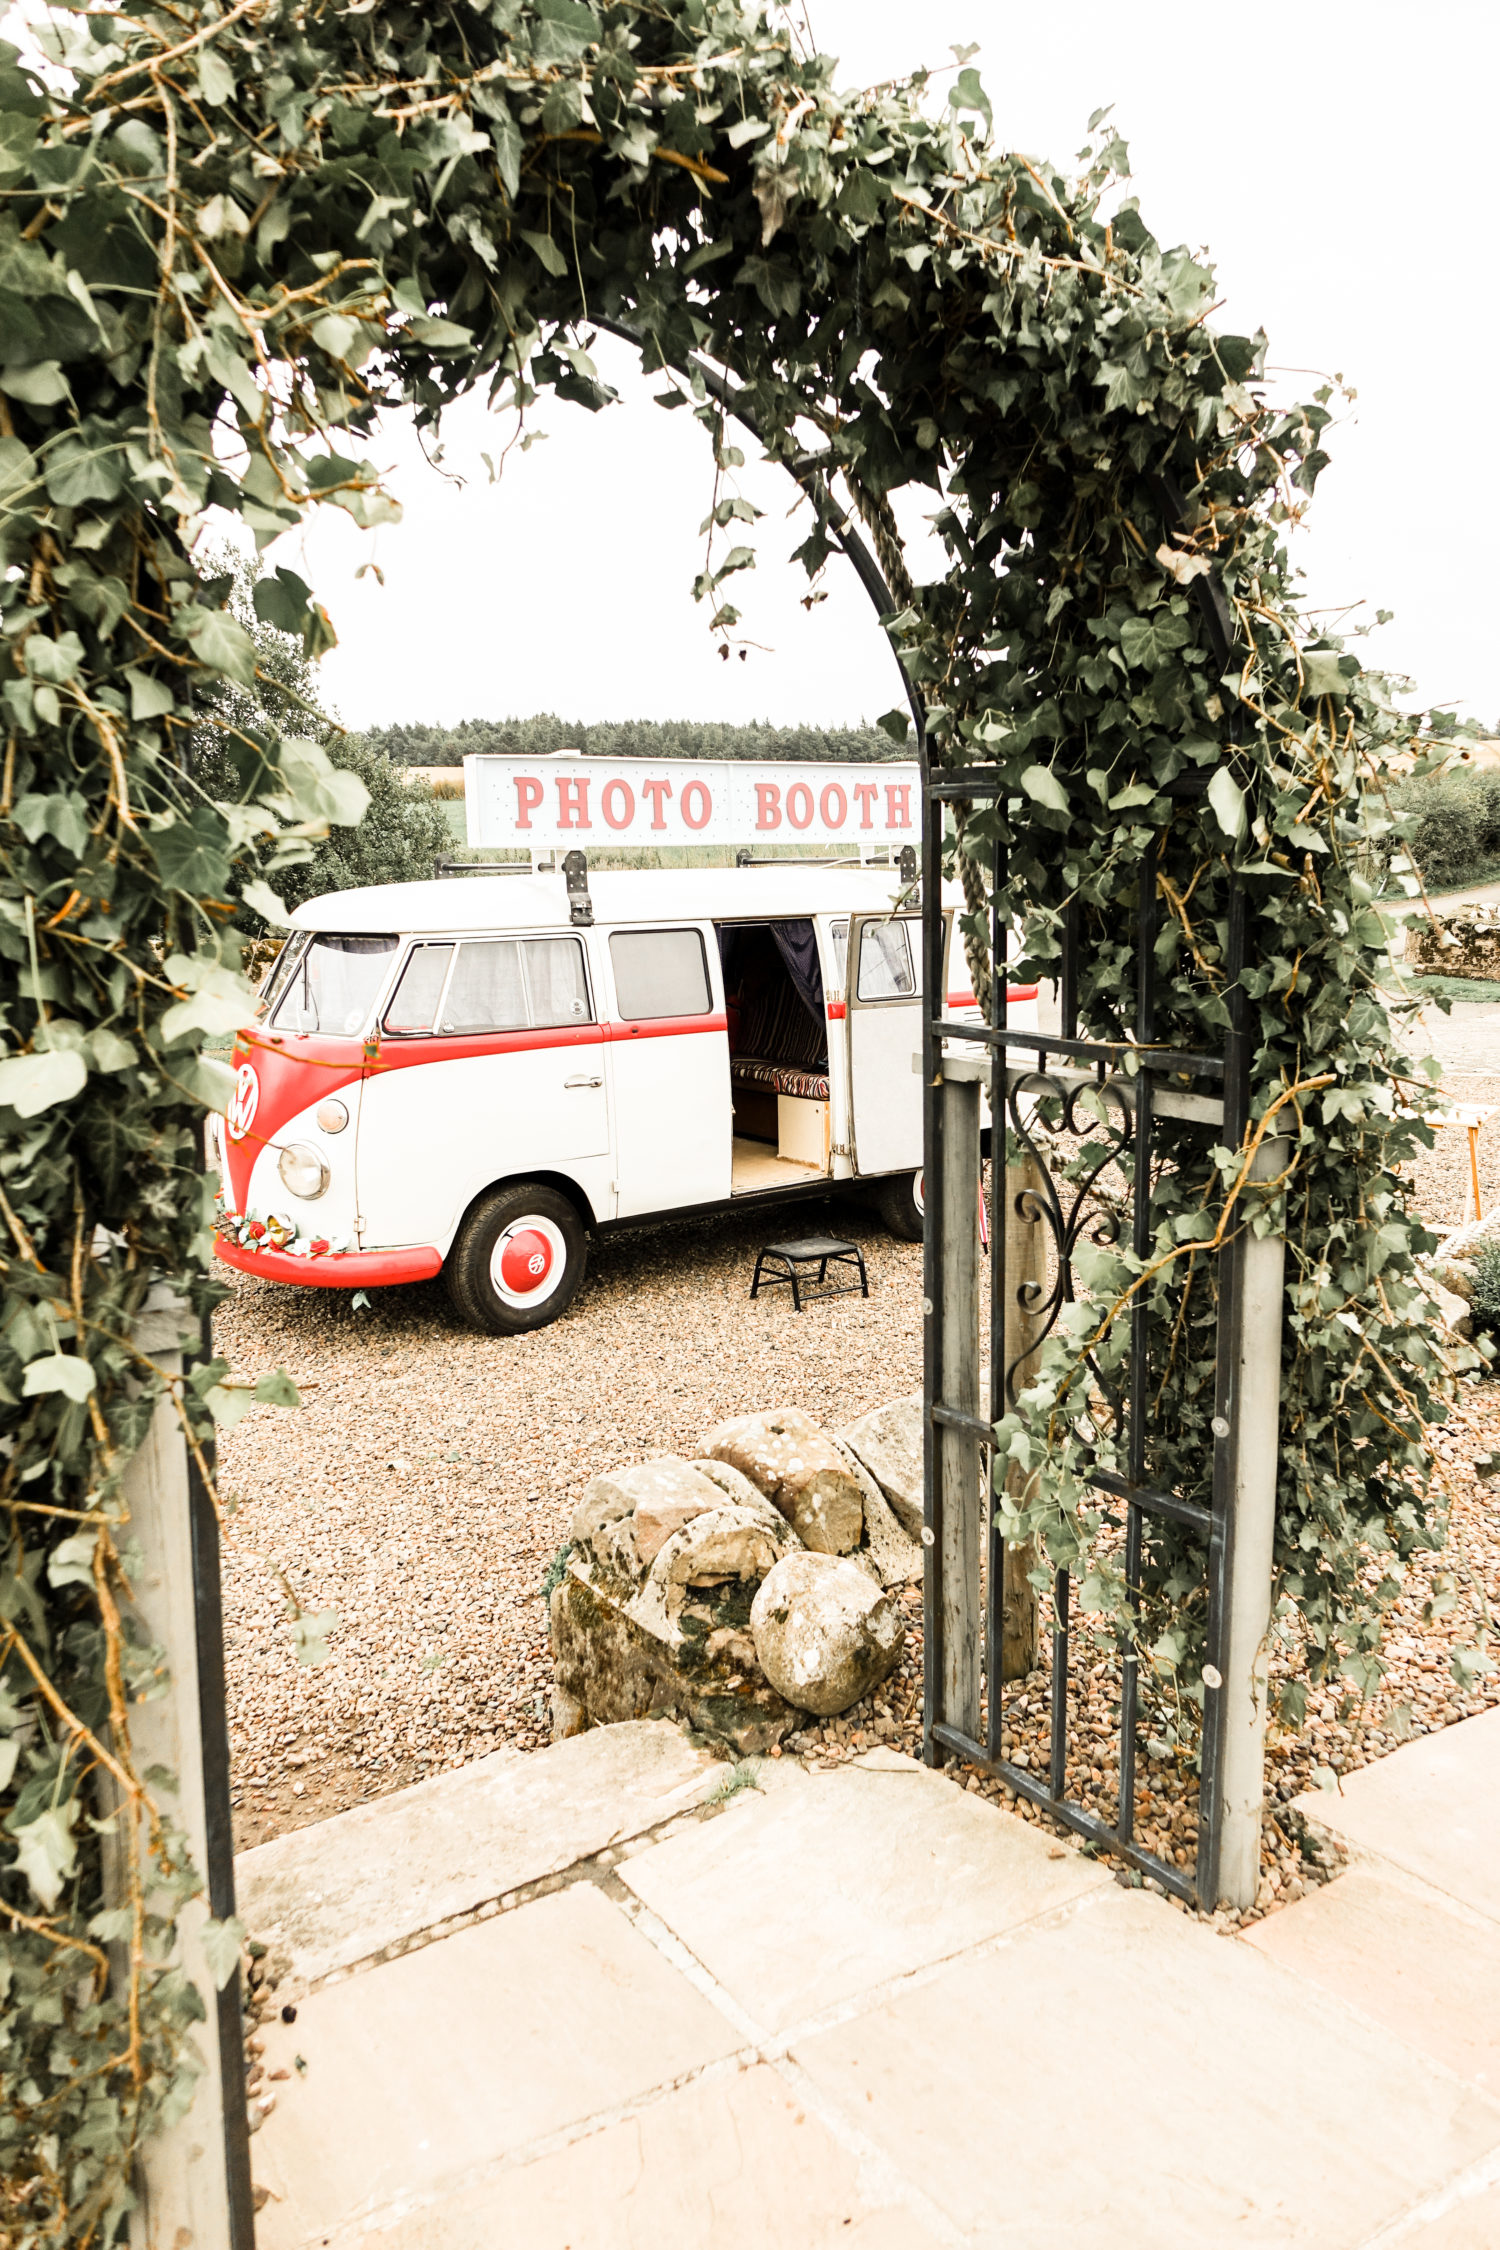 Vintage Campervan Photo Booth at Rustic Wedding Venue